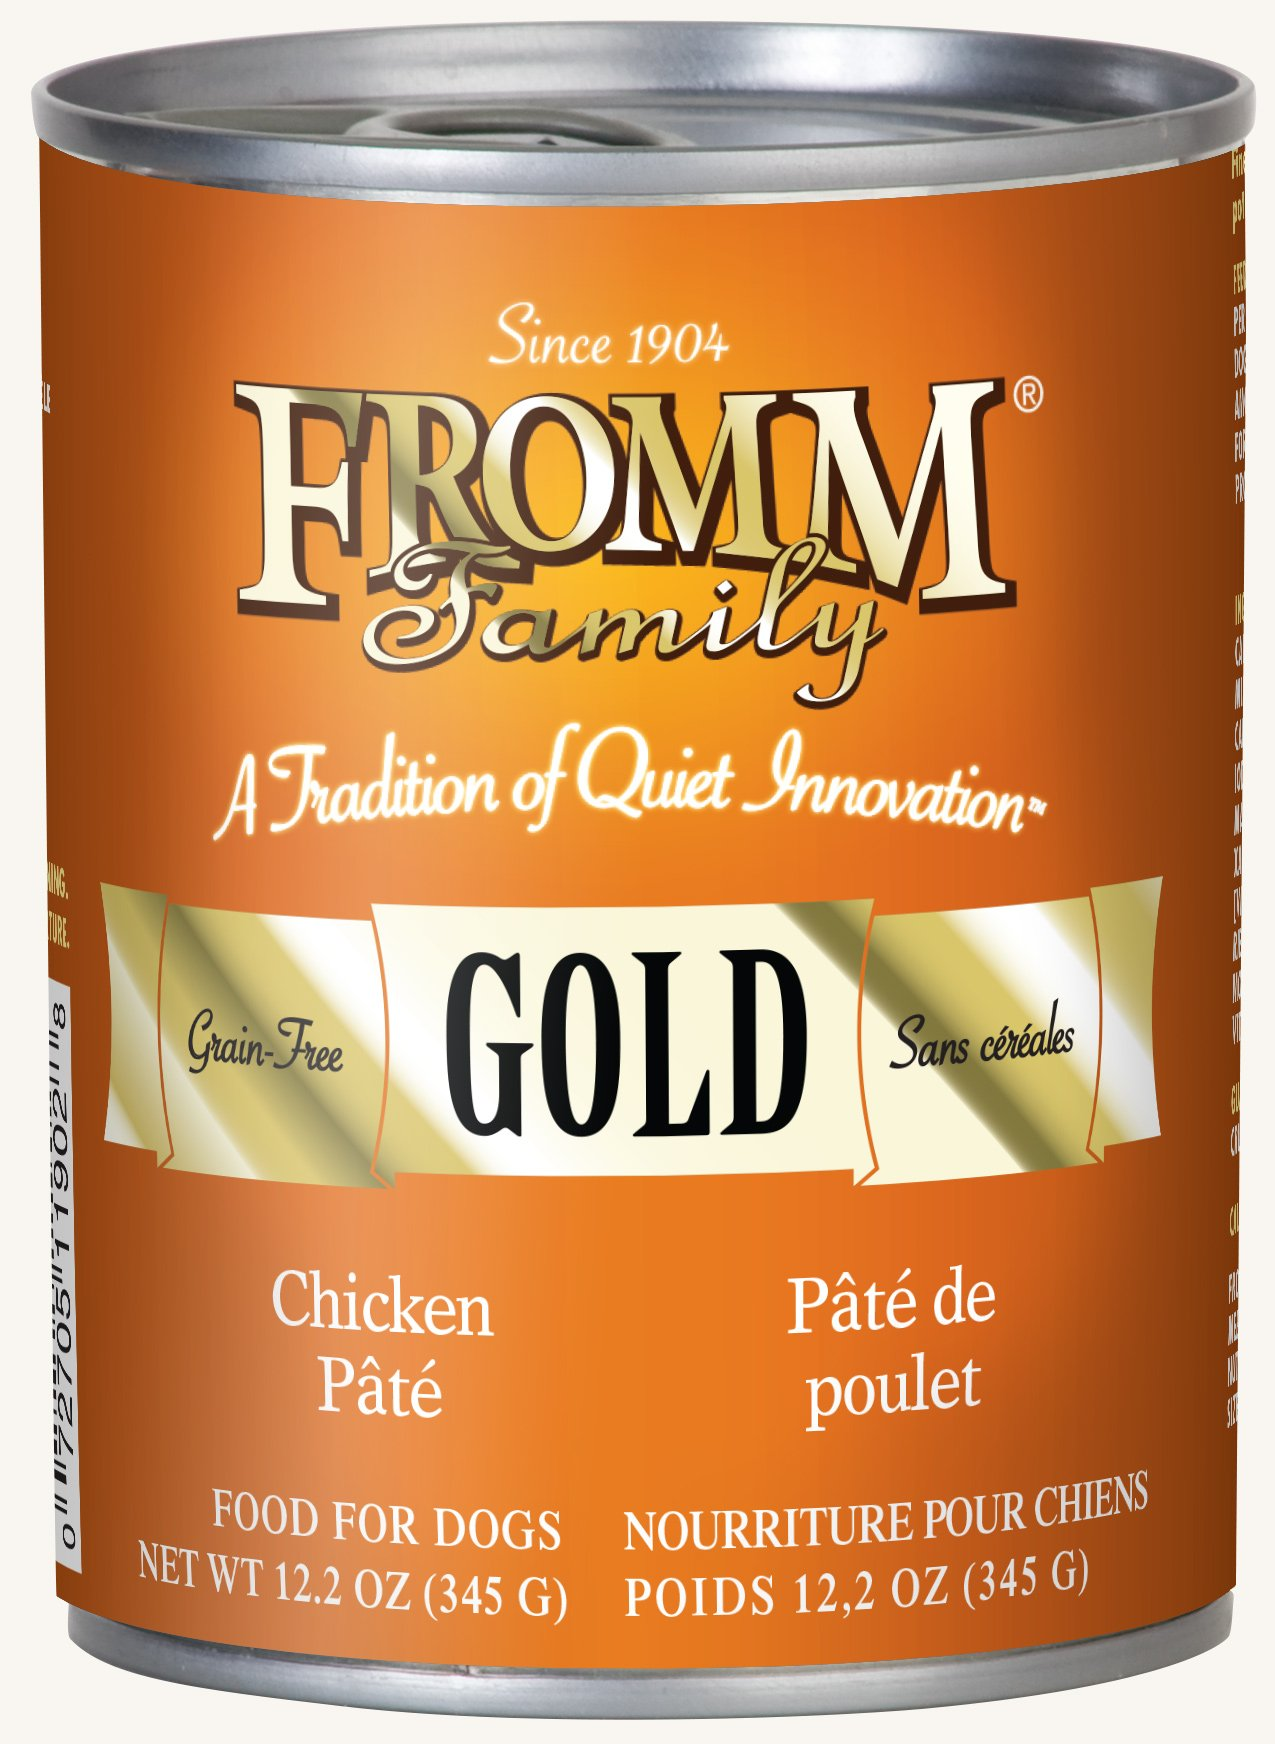 Fromm Gold Chicken Pâté 12.2oz / case of 12 by Fromm